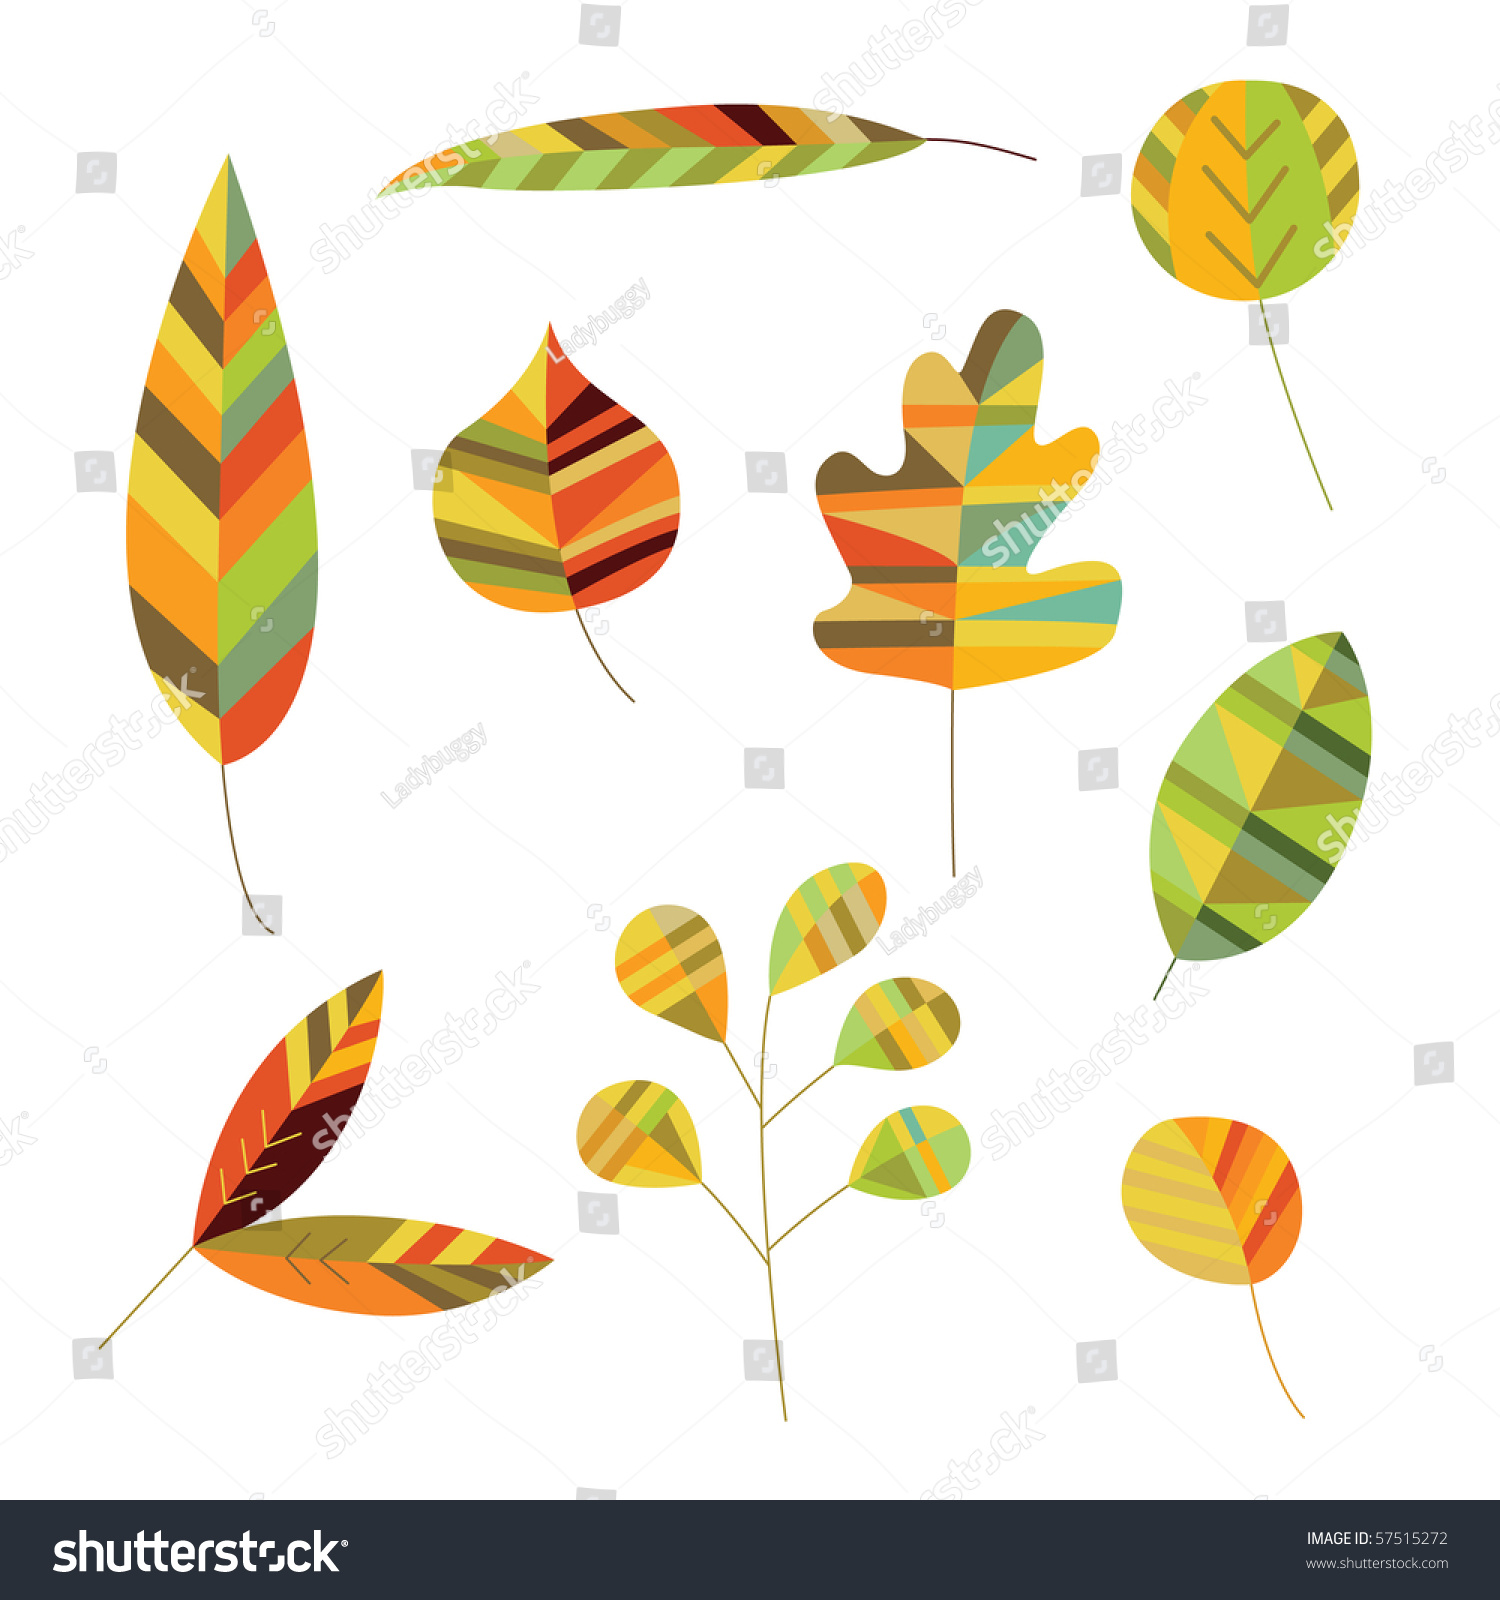 Warm Shades Of Green : Decorative leaves in warm shades of green brown and